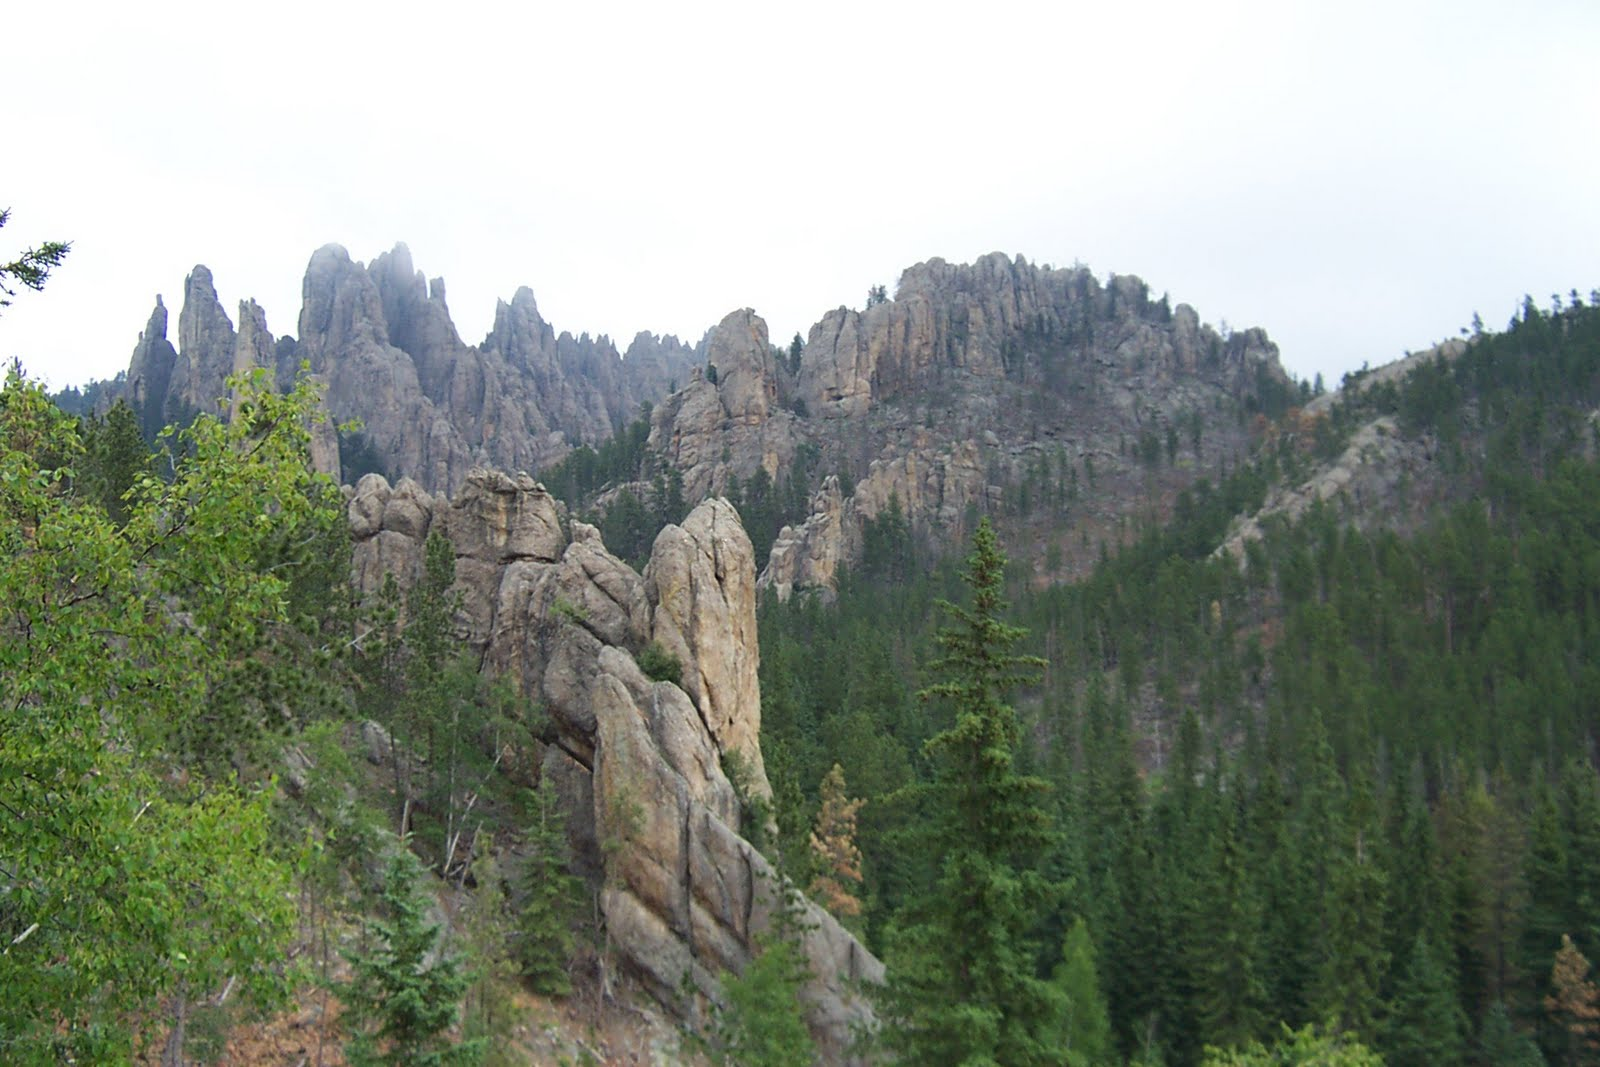 Devils Tower Wy >> Pictures from North and South Dakota/Devil's Tower, WY: July 2010: Mt. Rushmore, Black Hills ...